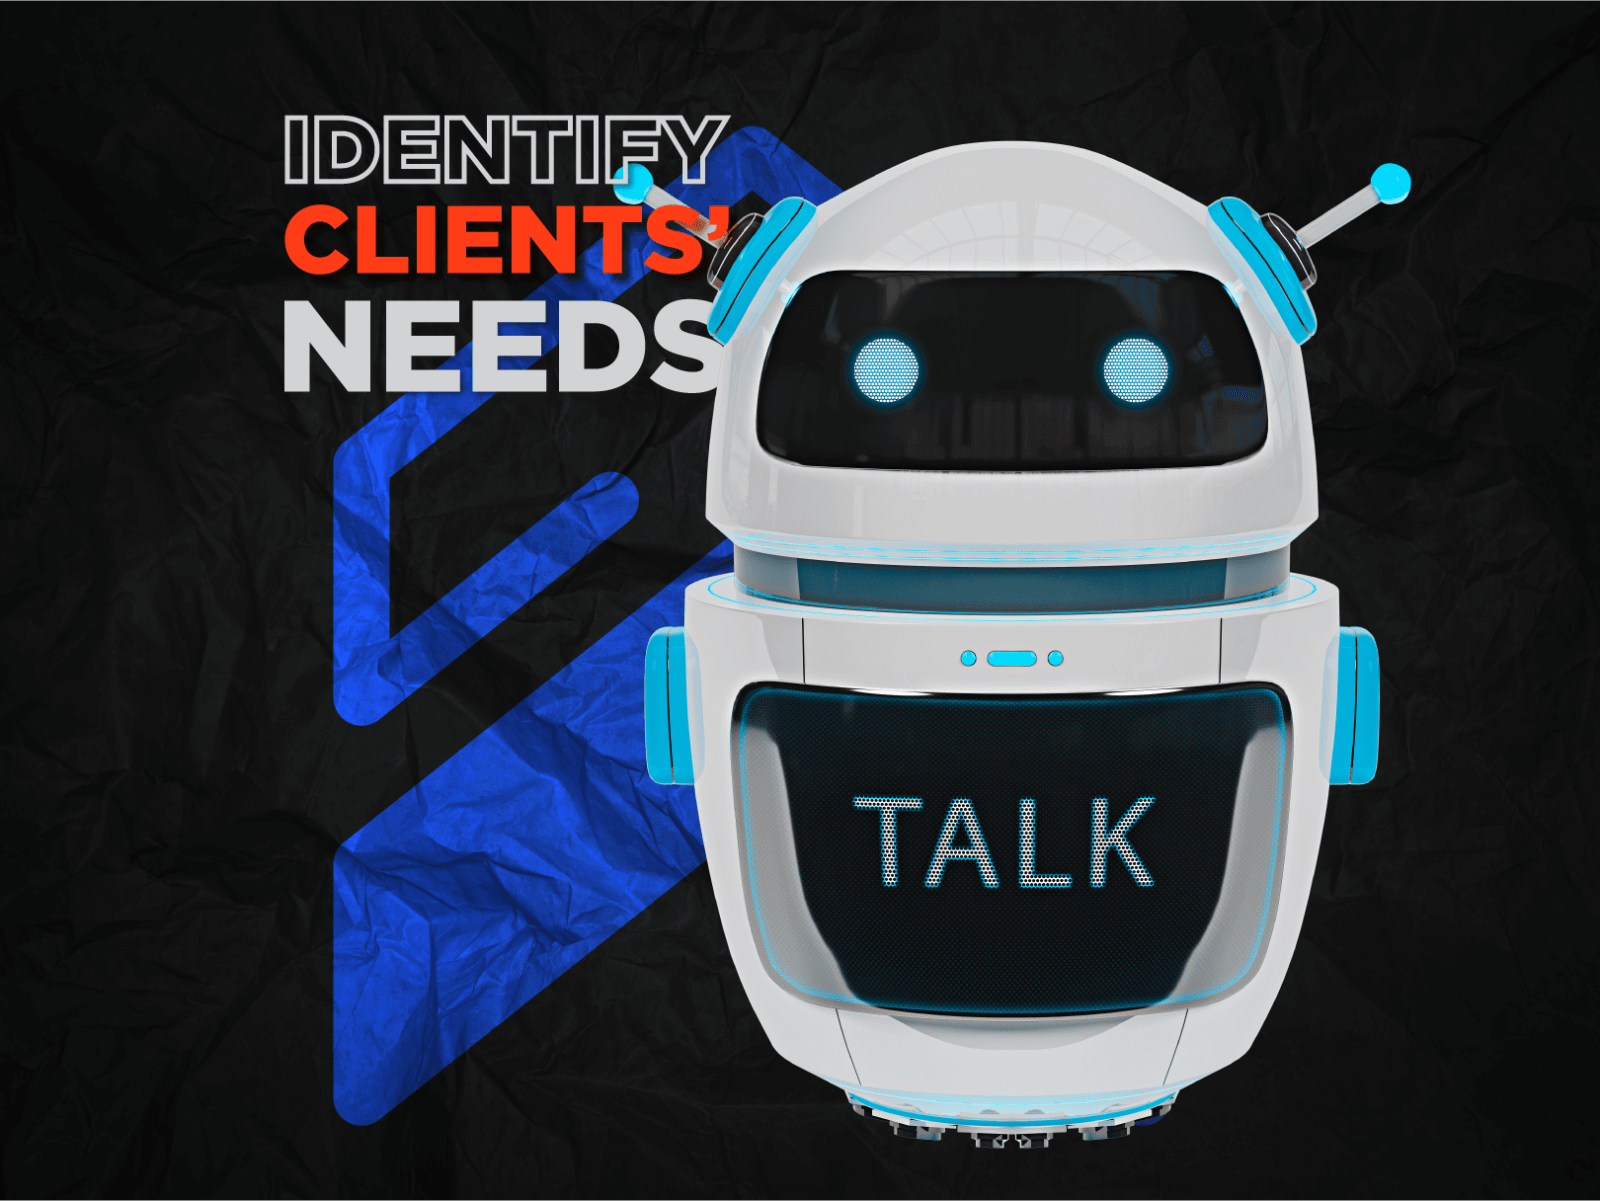 Identify Clients' Needs